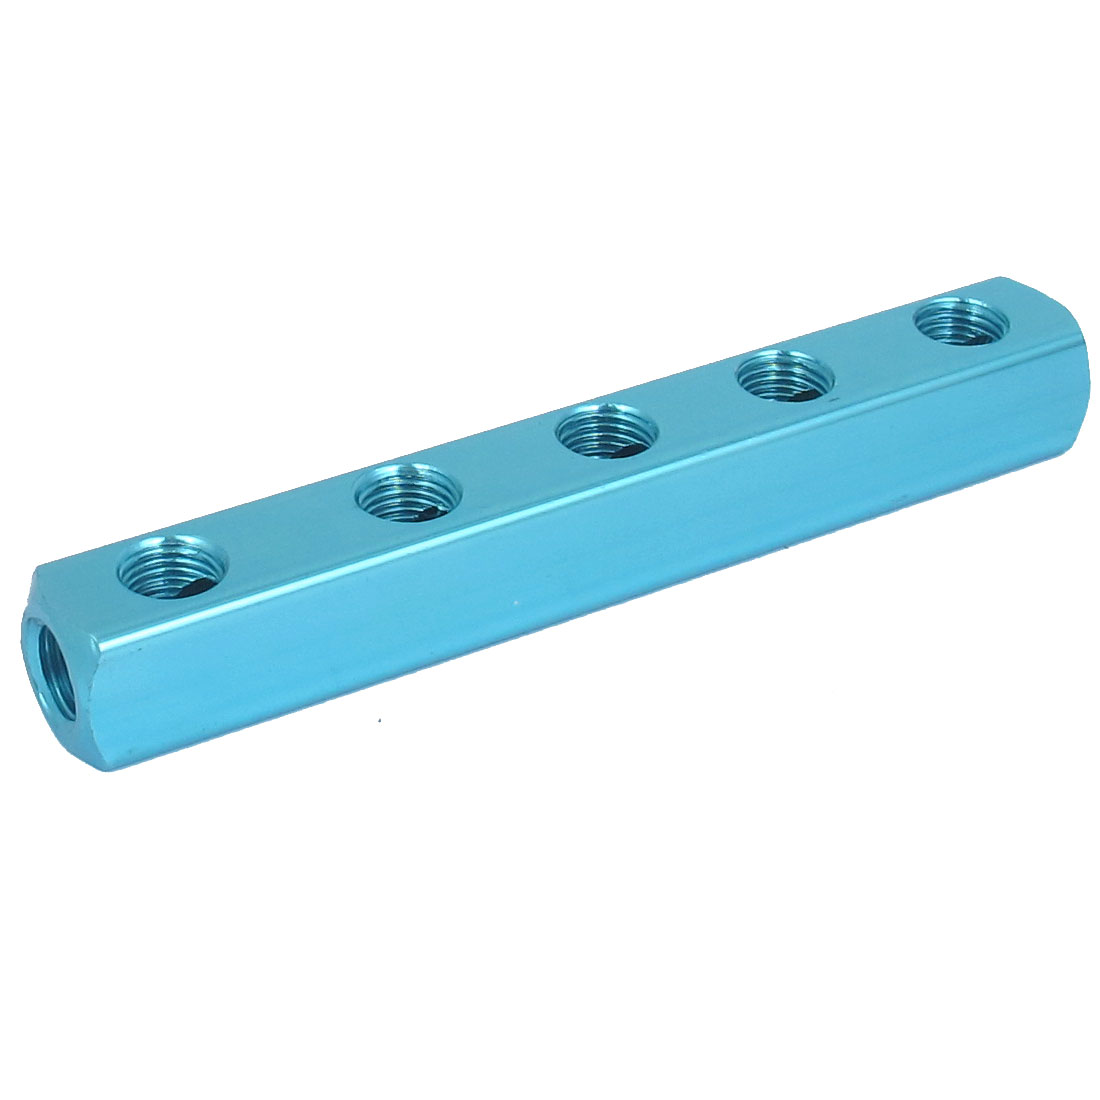 Air Compressor Pneumatic 1/4BSP Thread 5 Way 8 Ports Hose Inline Manifold Block Splitter Socket Blue